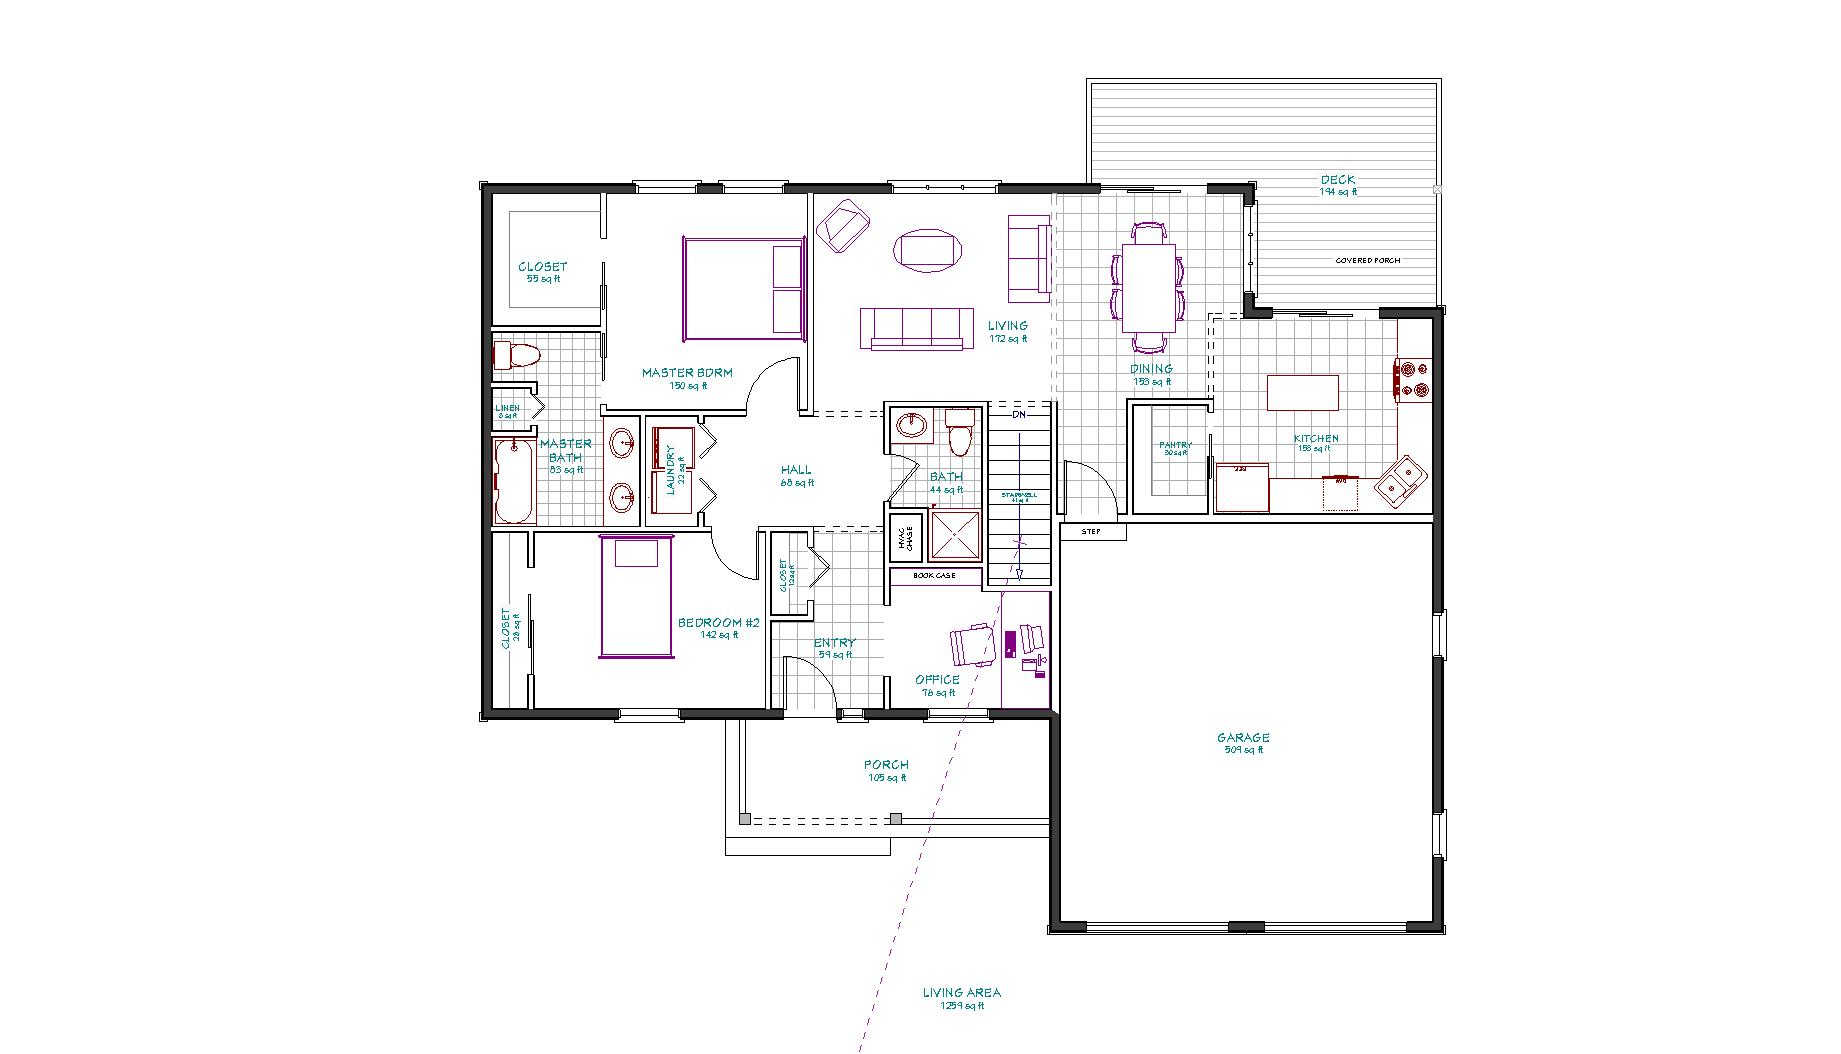 2000sq foot country house plans house plans home designs - House plans under square feet gallery ...